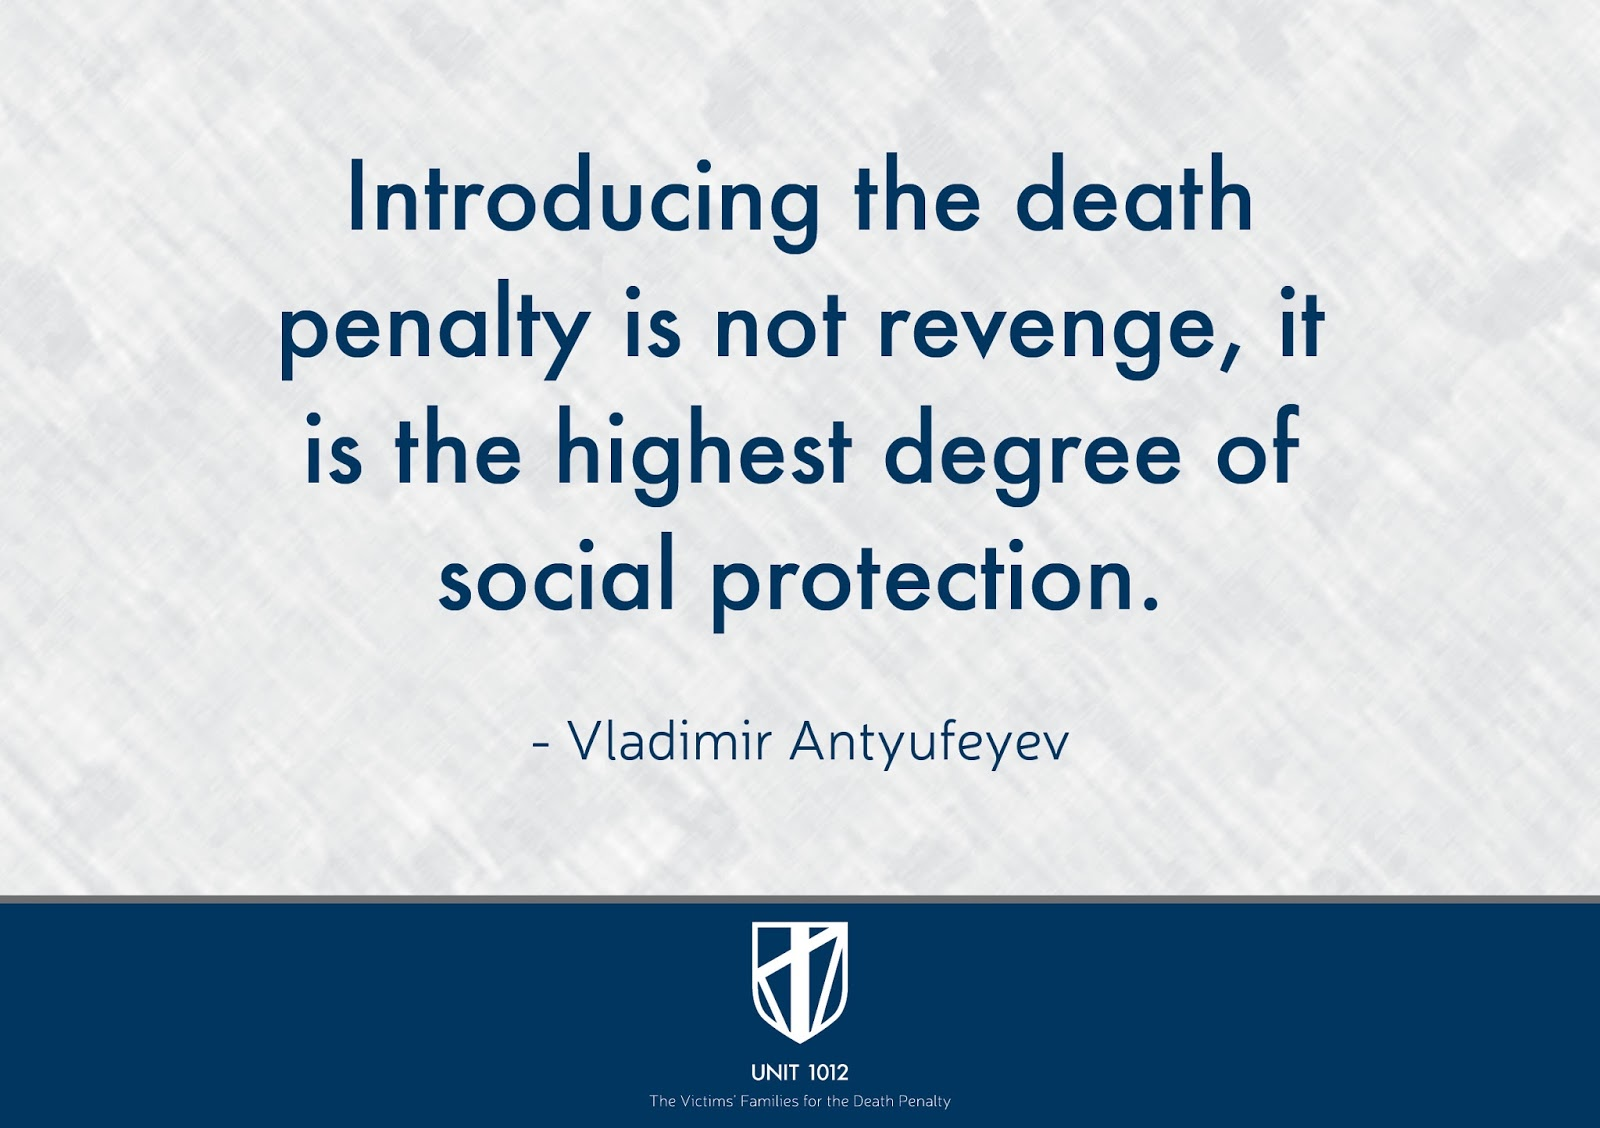 argumentative essay over death penalty English task –argumentative essay the death penalty the argument of whether the death penalty is effective is an age-old and contentious issue.